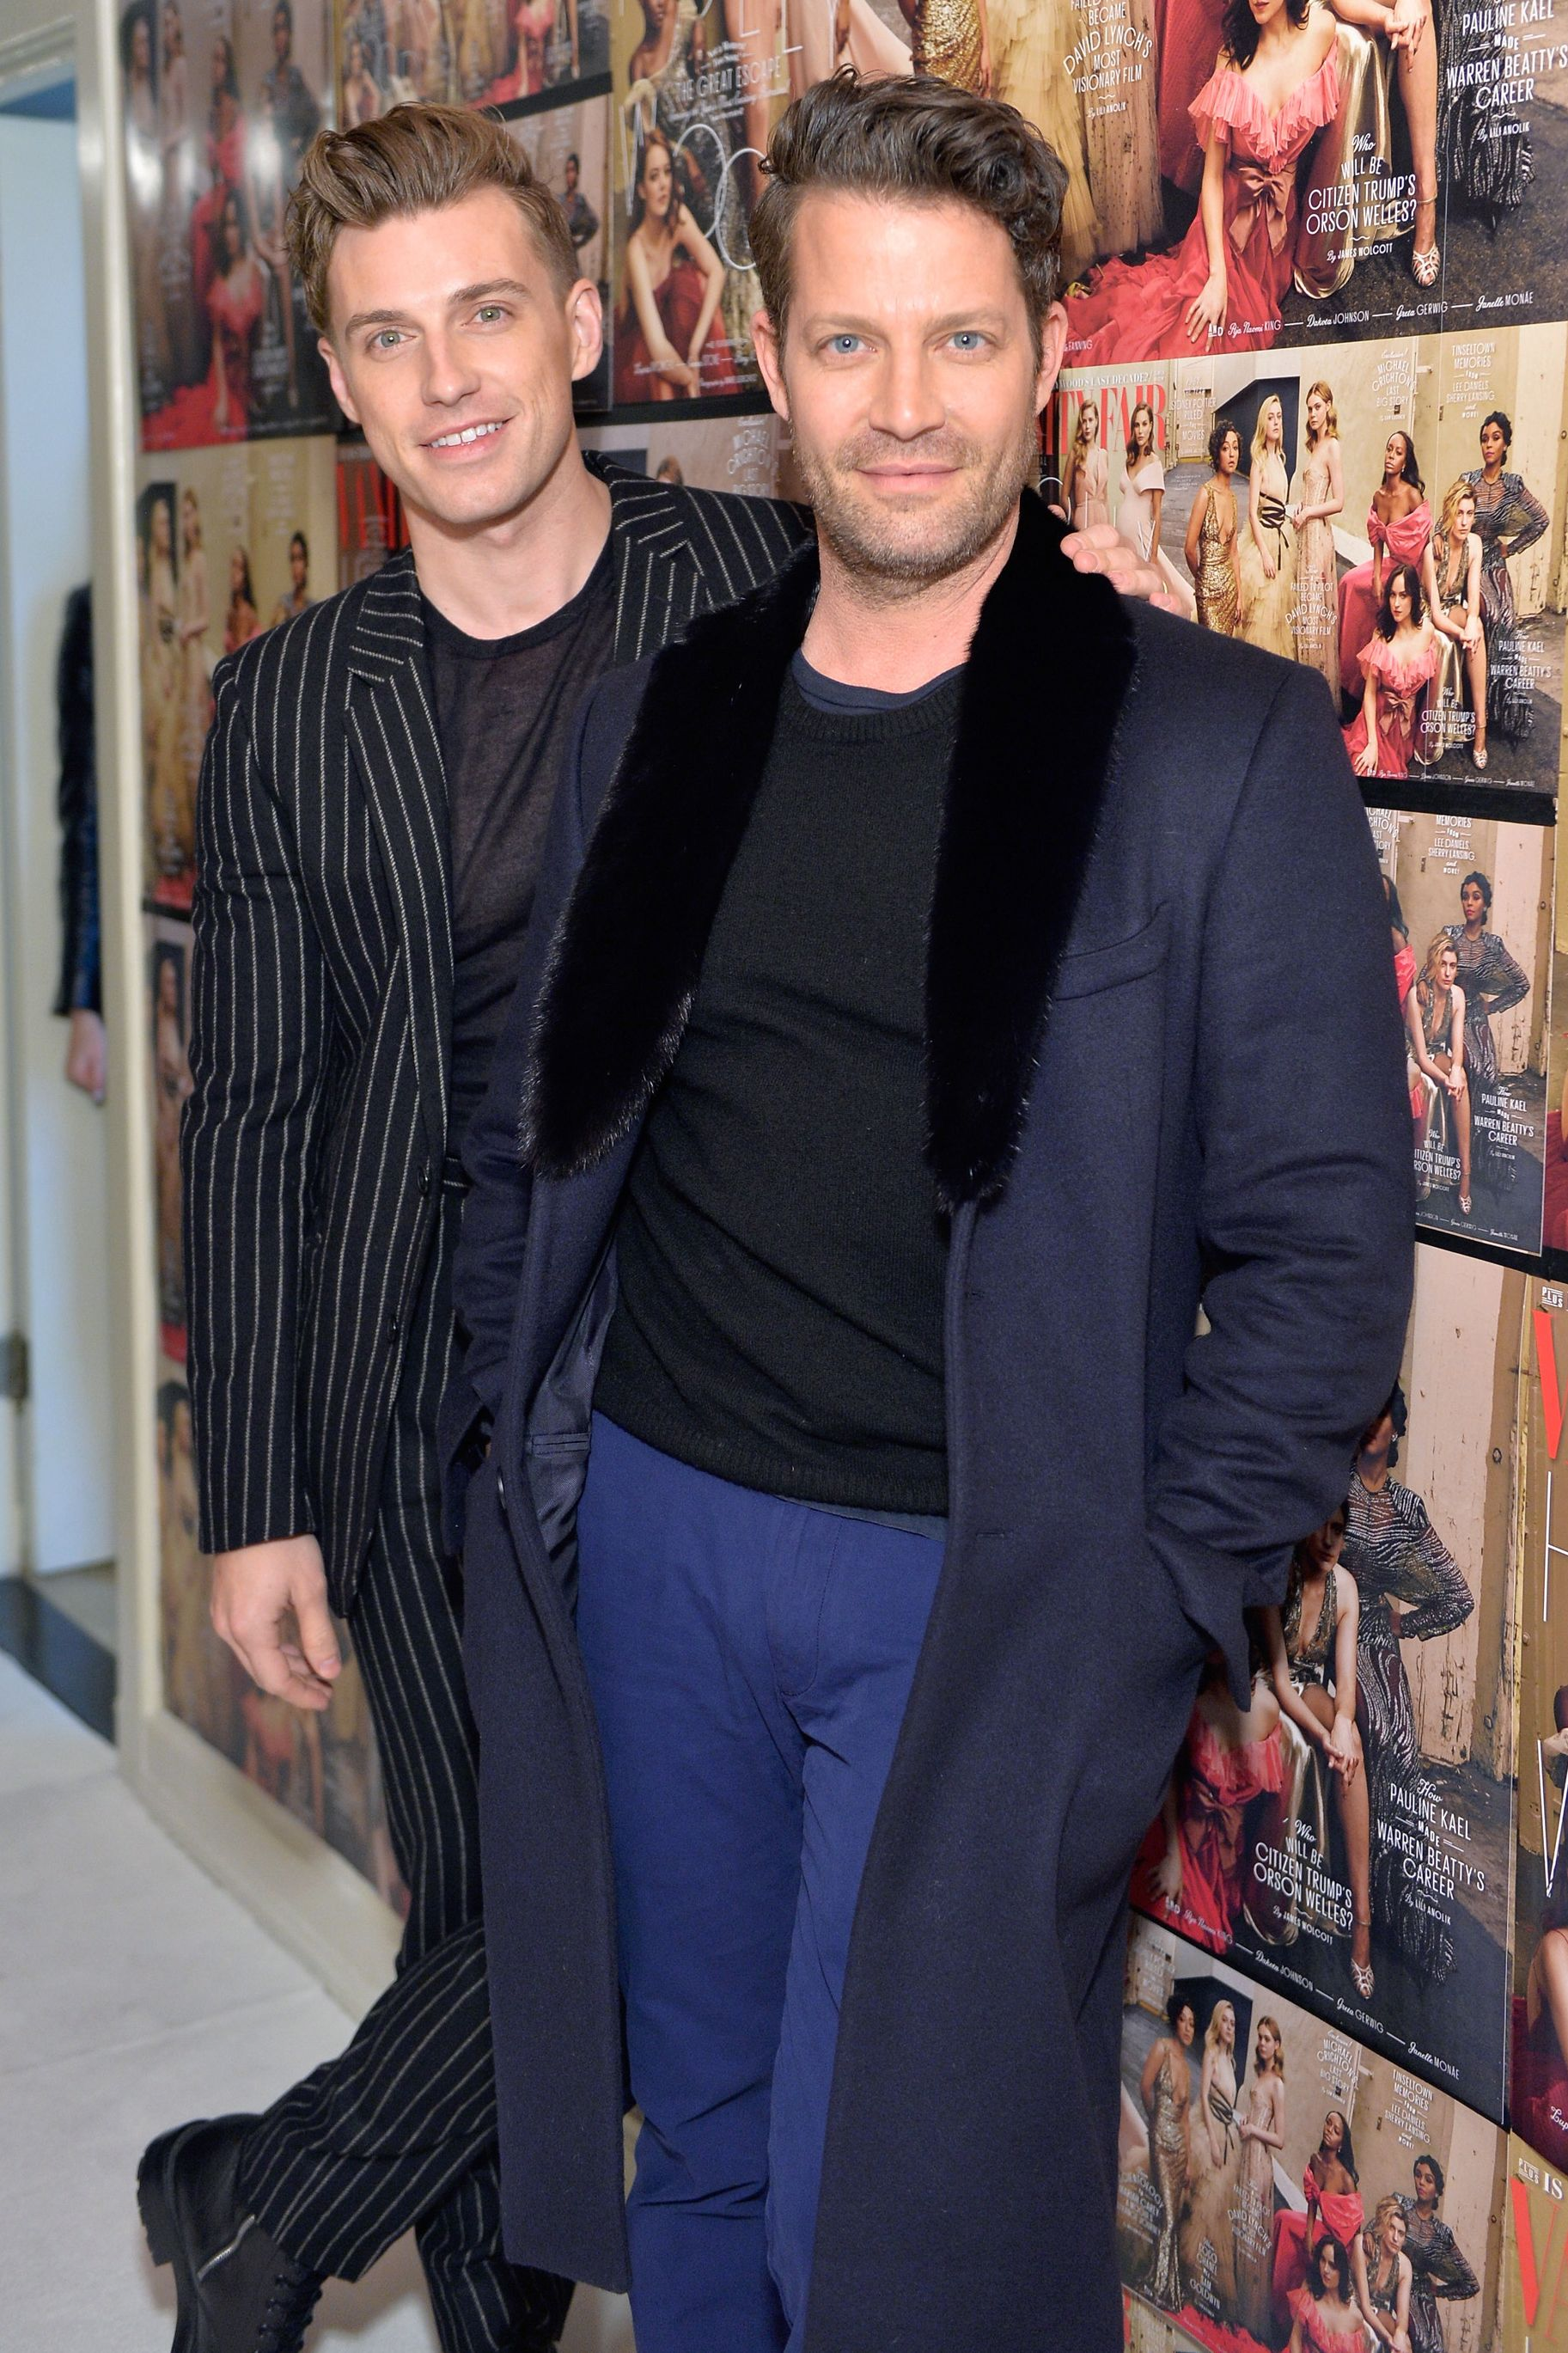 Jeremiah Brent and Nate Berkus The interior designer husbands (and dads to daughter Poppy) look like older and younger versions of the same man. ( Berkus is 46 years old, if you can believe it.